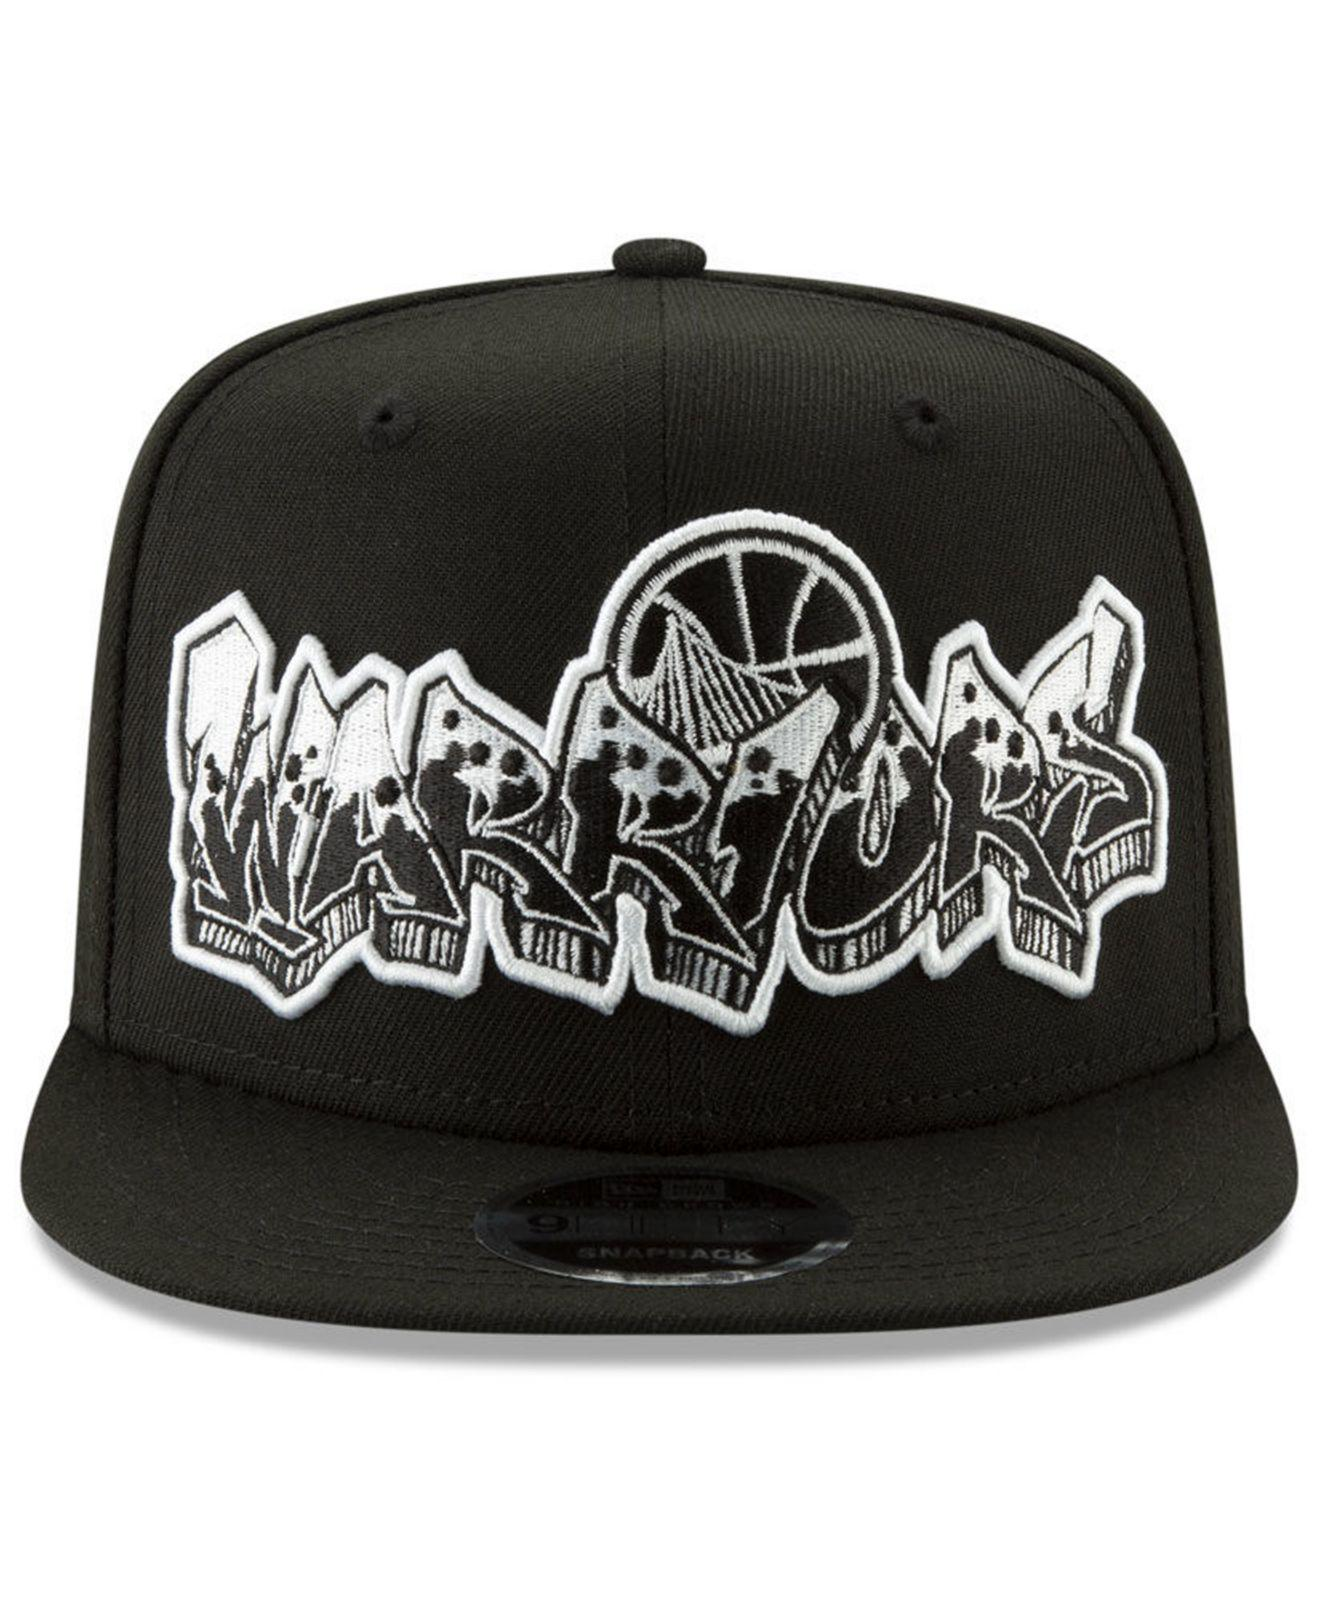 huge discount c03c3 32840 ... coupon for lyst ktz golden state warriors retroword black white 9fifty  snapback cap in black for